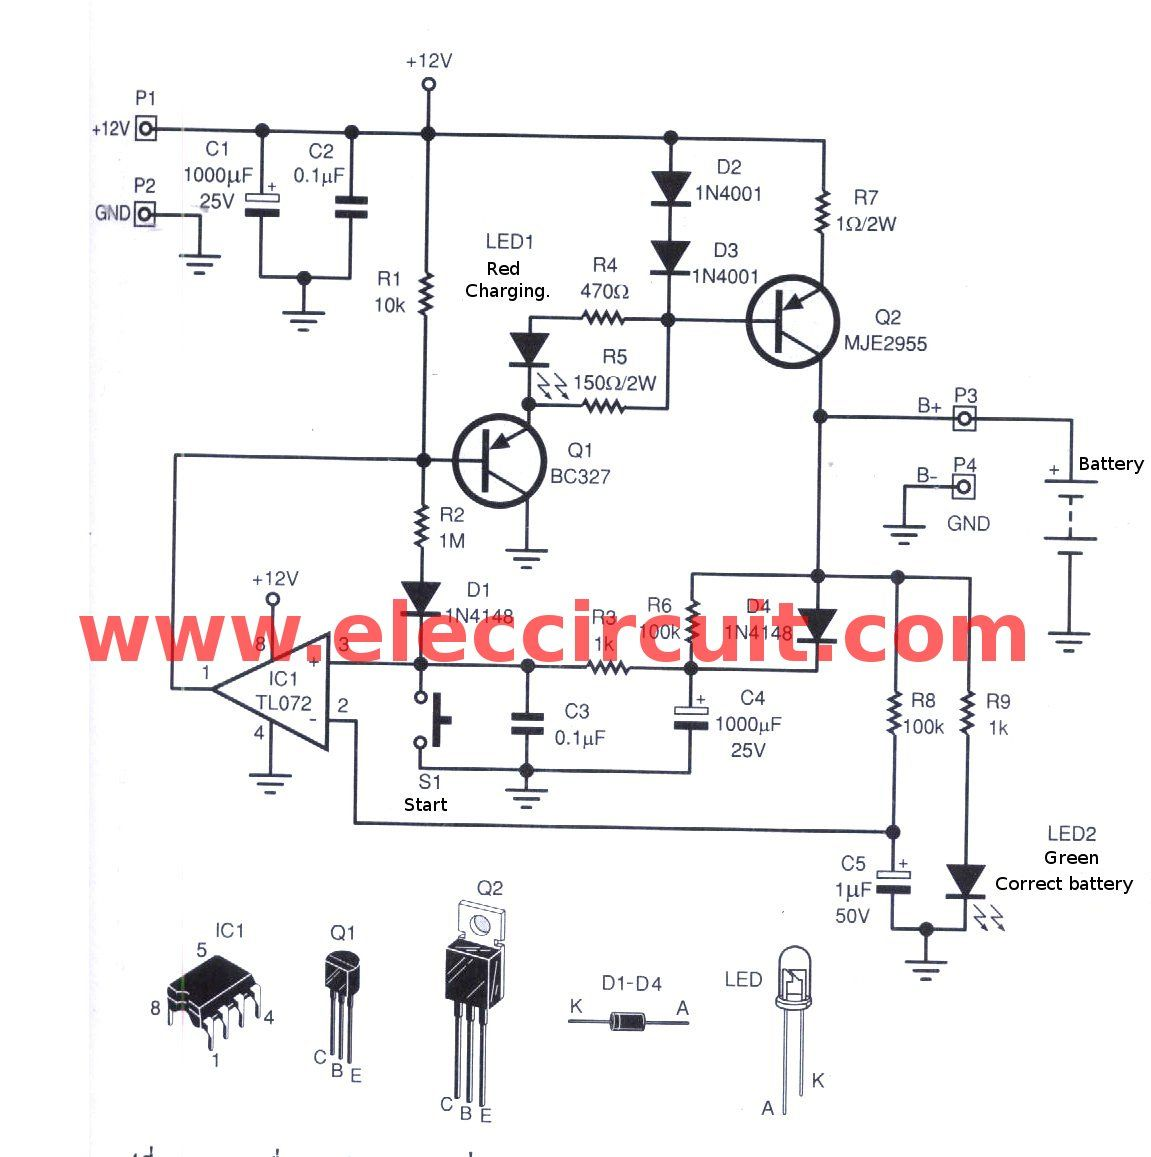 Automatic Nimh Battery Charger Circuit Cutoff When Full 200m Fm Transmitter Electronic Circuits And Diagramelectronics The Project Is On Automatically Shut Off Fully Charged Can Charge Batteries 1 10 Pcs Depending Input Voltage